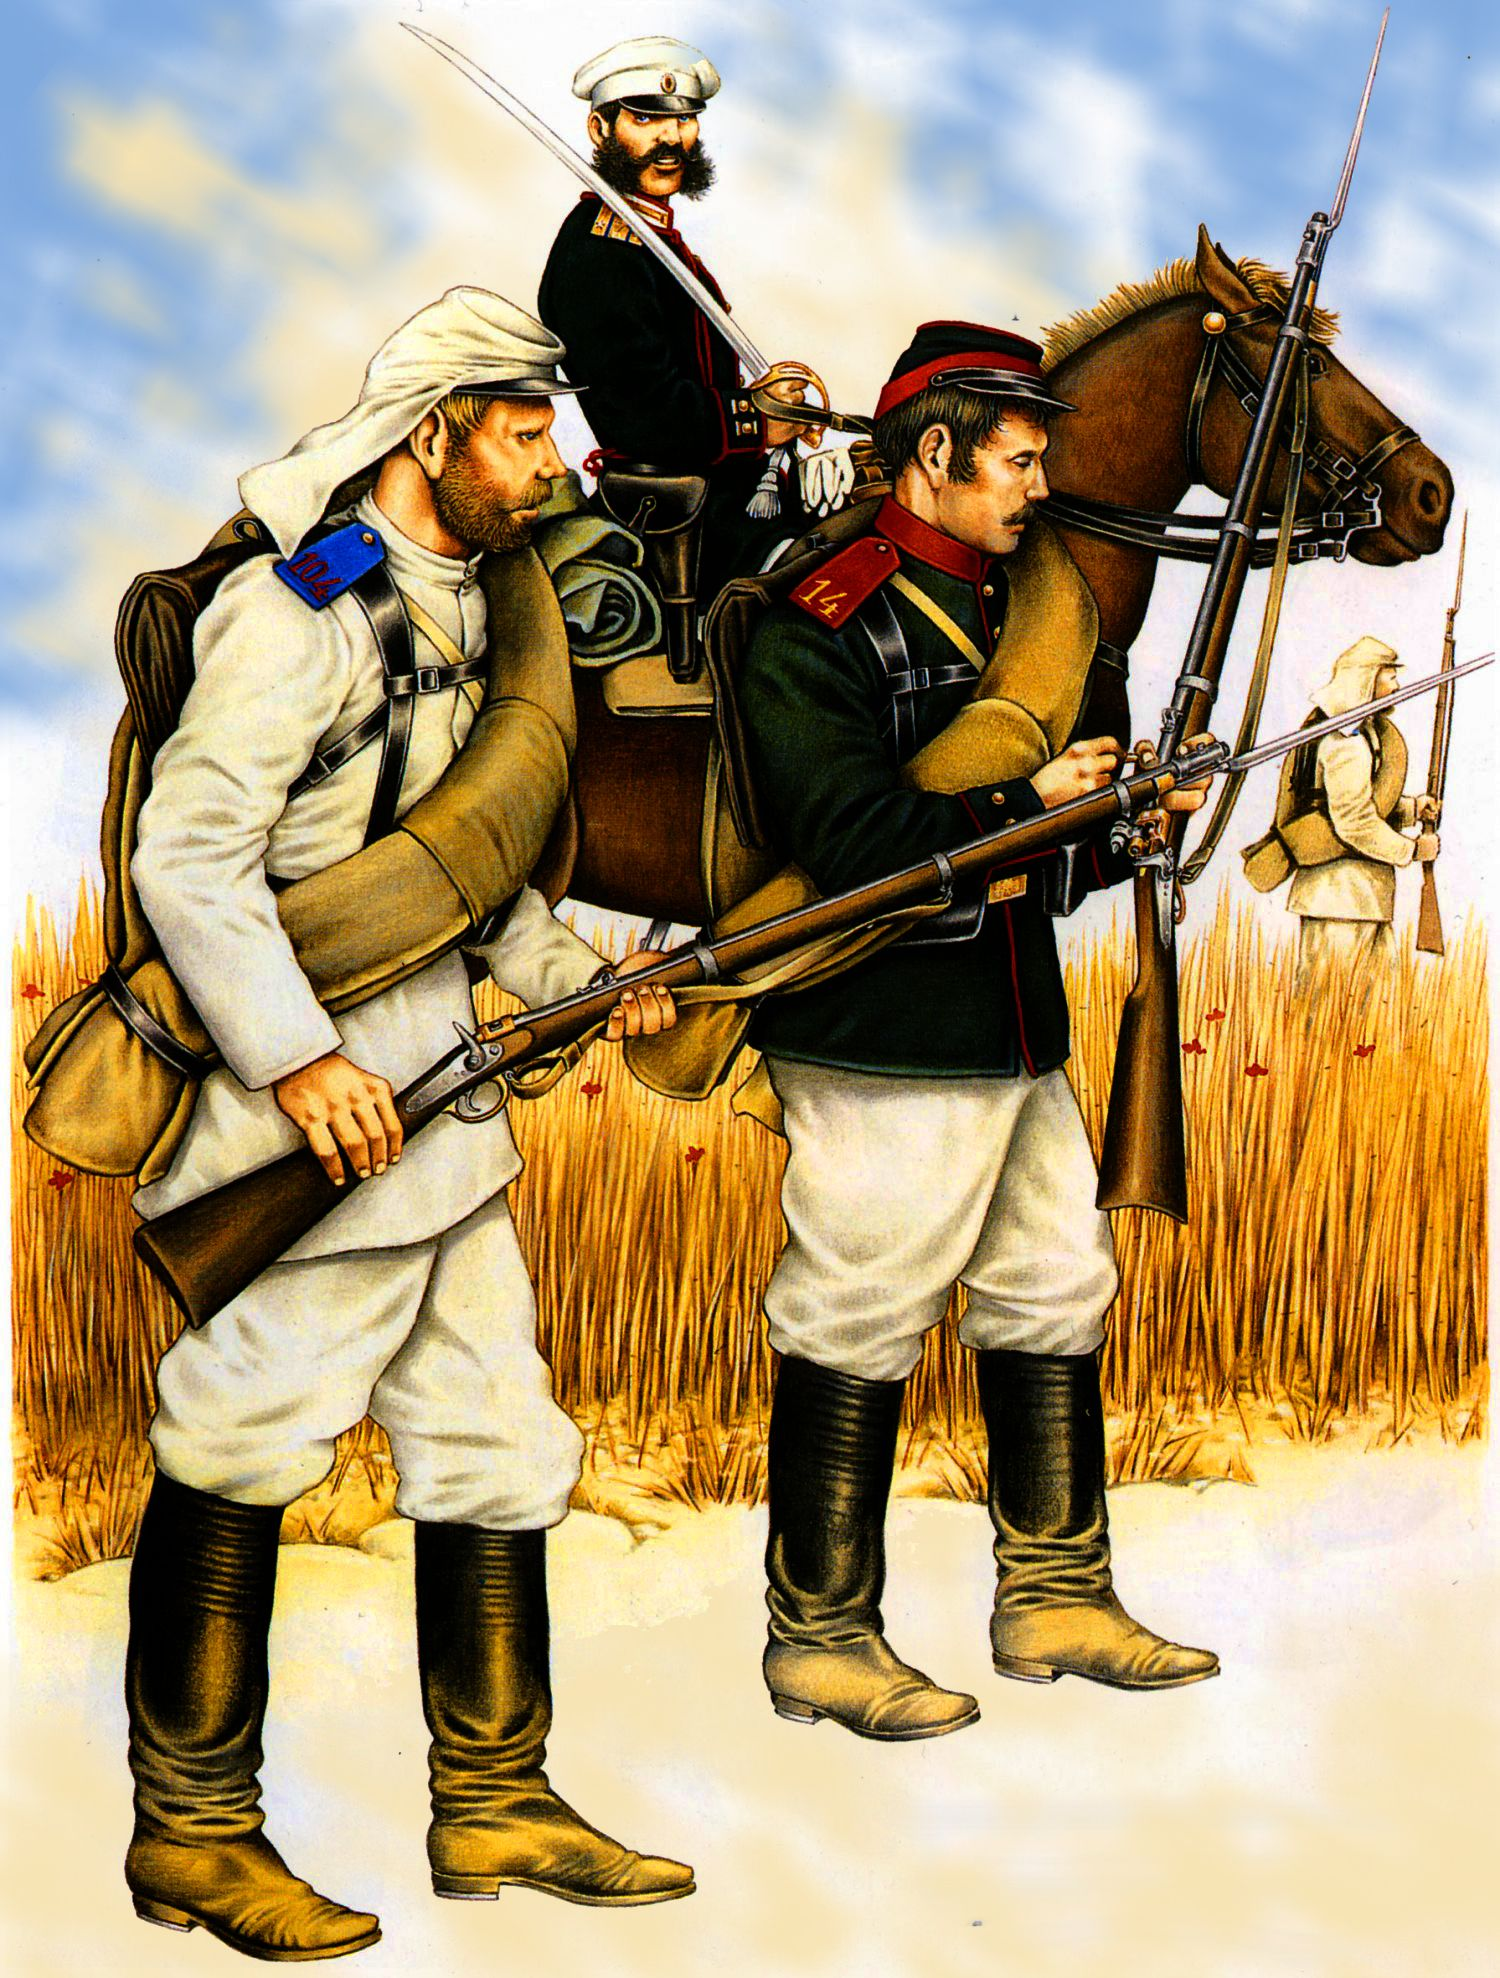 Russian line infantry during The Russo-Turkish War 1877 | Indians